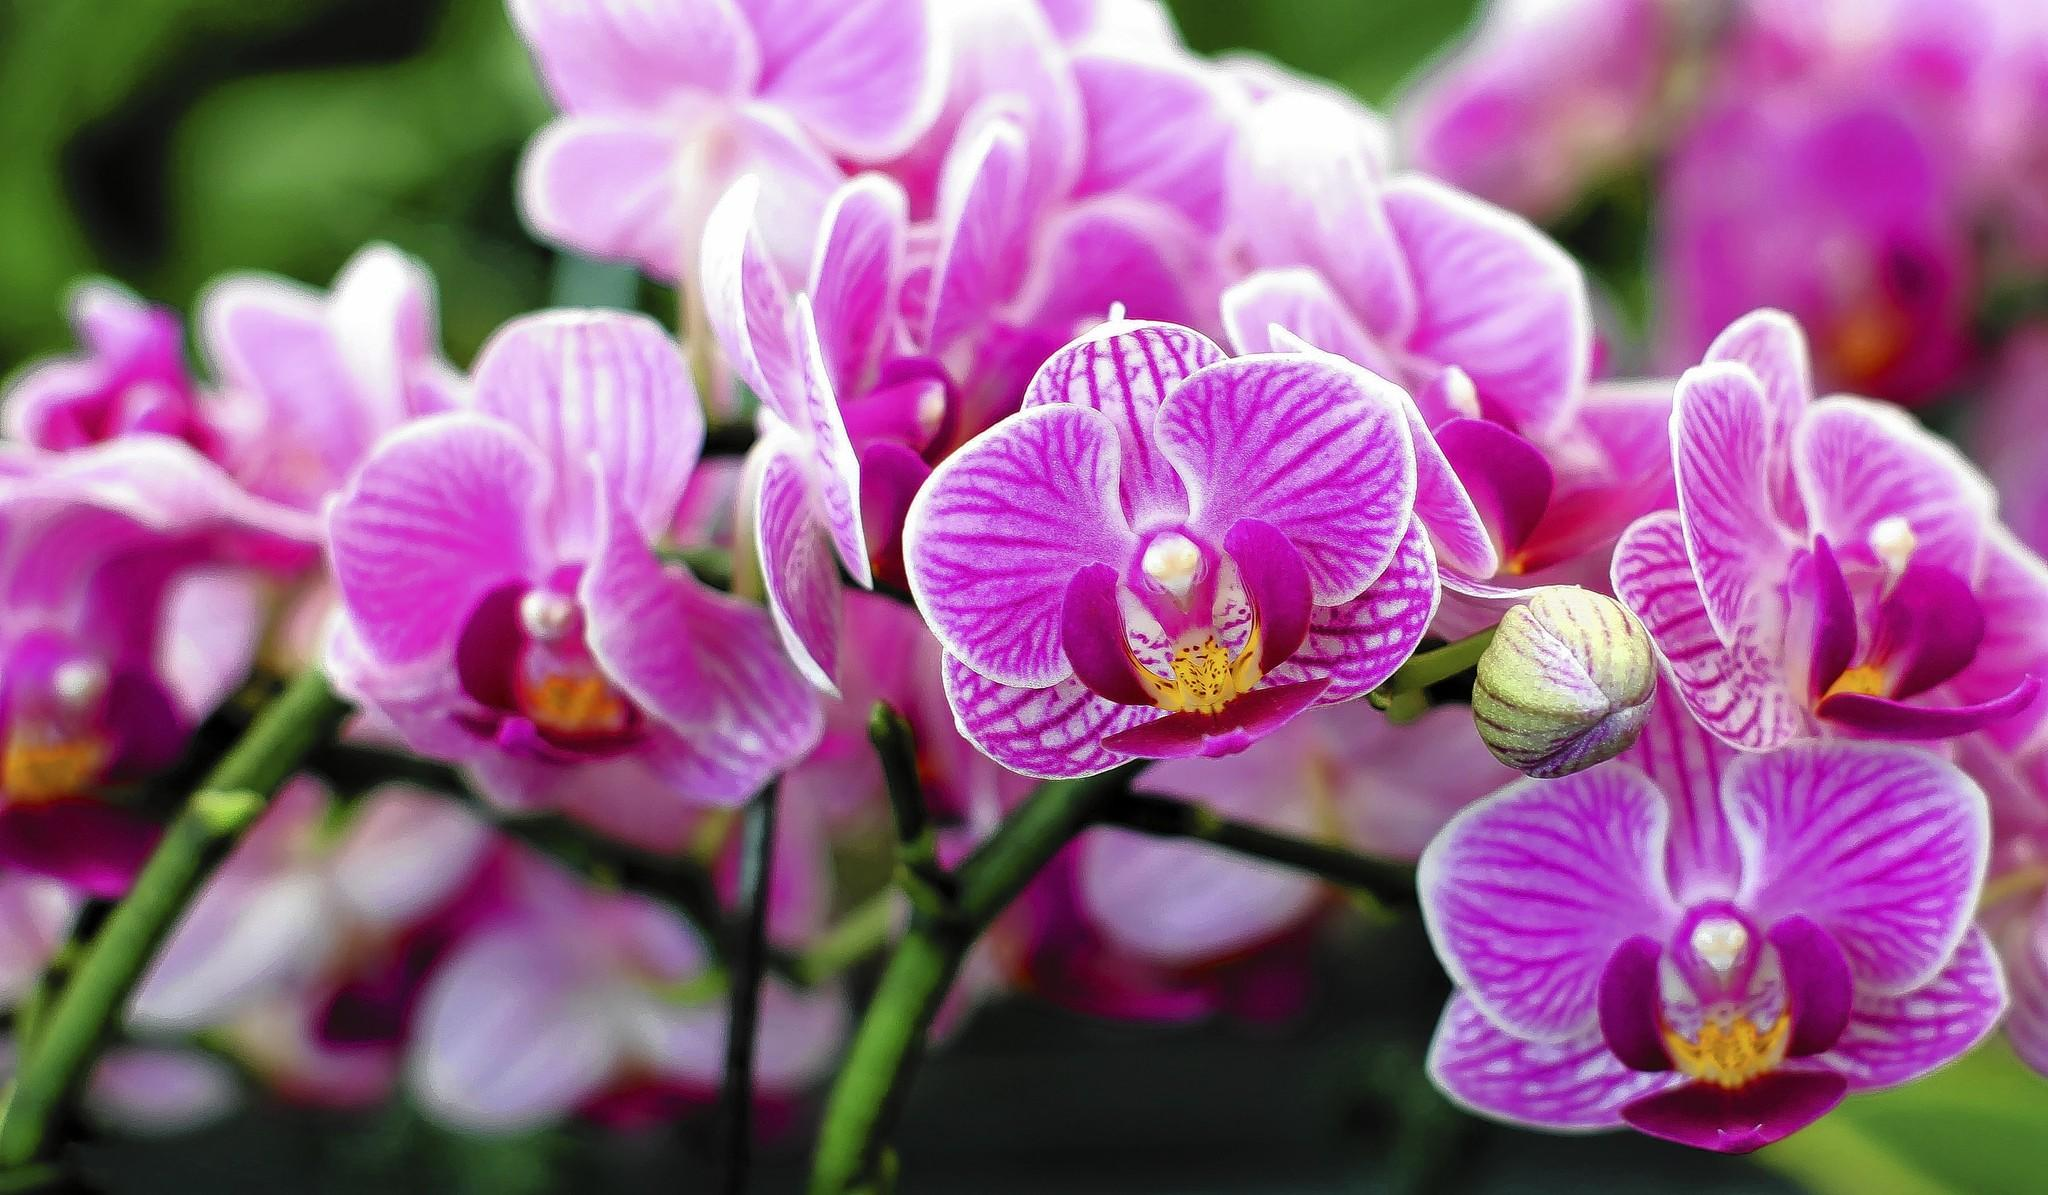 Most orchids don't appreciate direct sun, according to one expert.